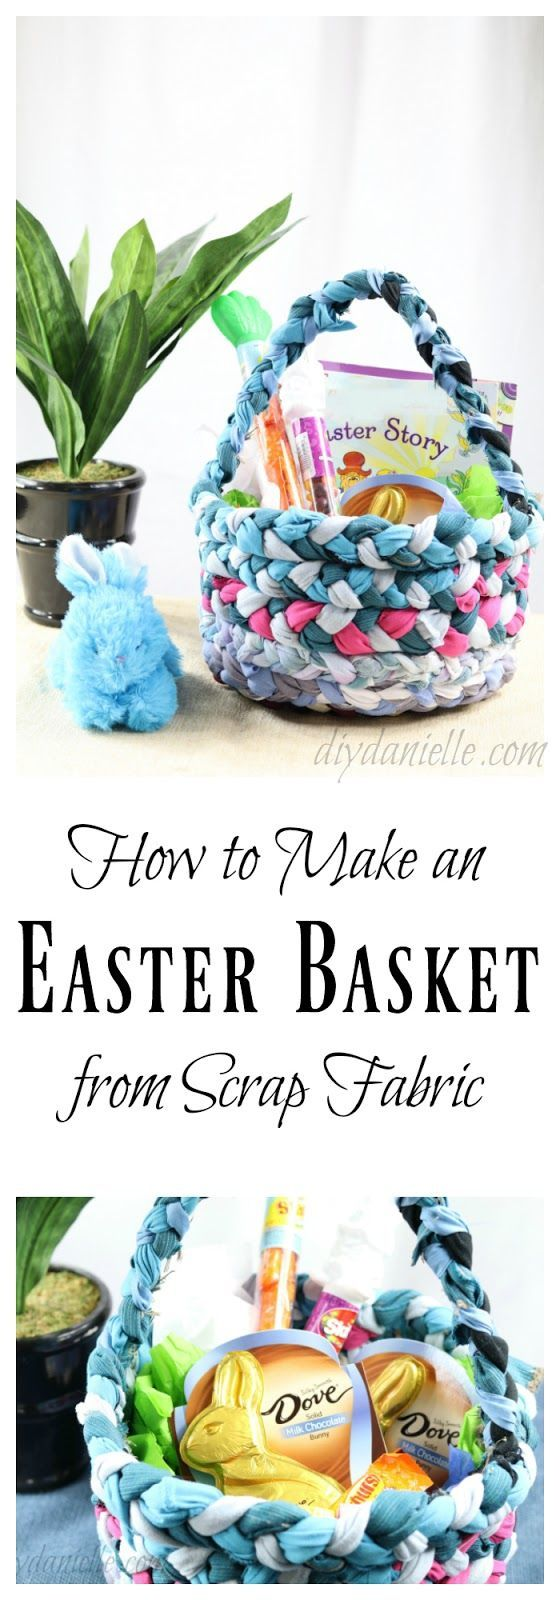 How to Sew an Easter Basket from Upcycled Fabric Mod Podge Rocks | Crafts + DIY